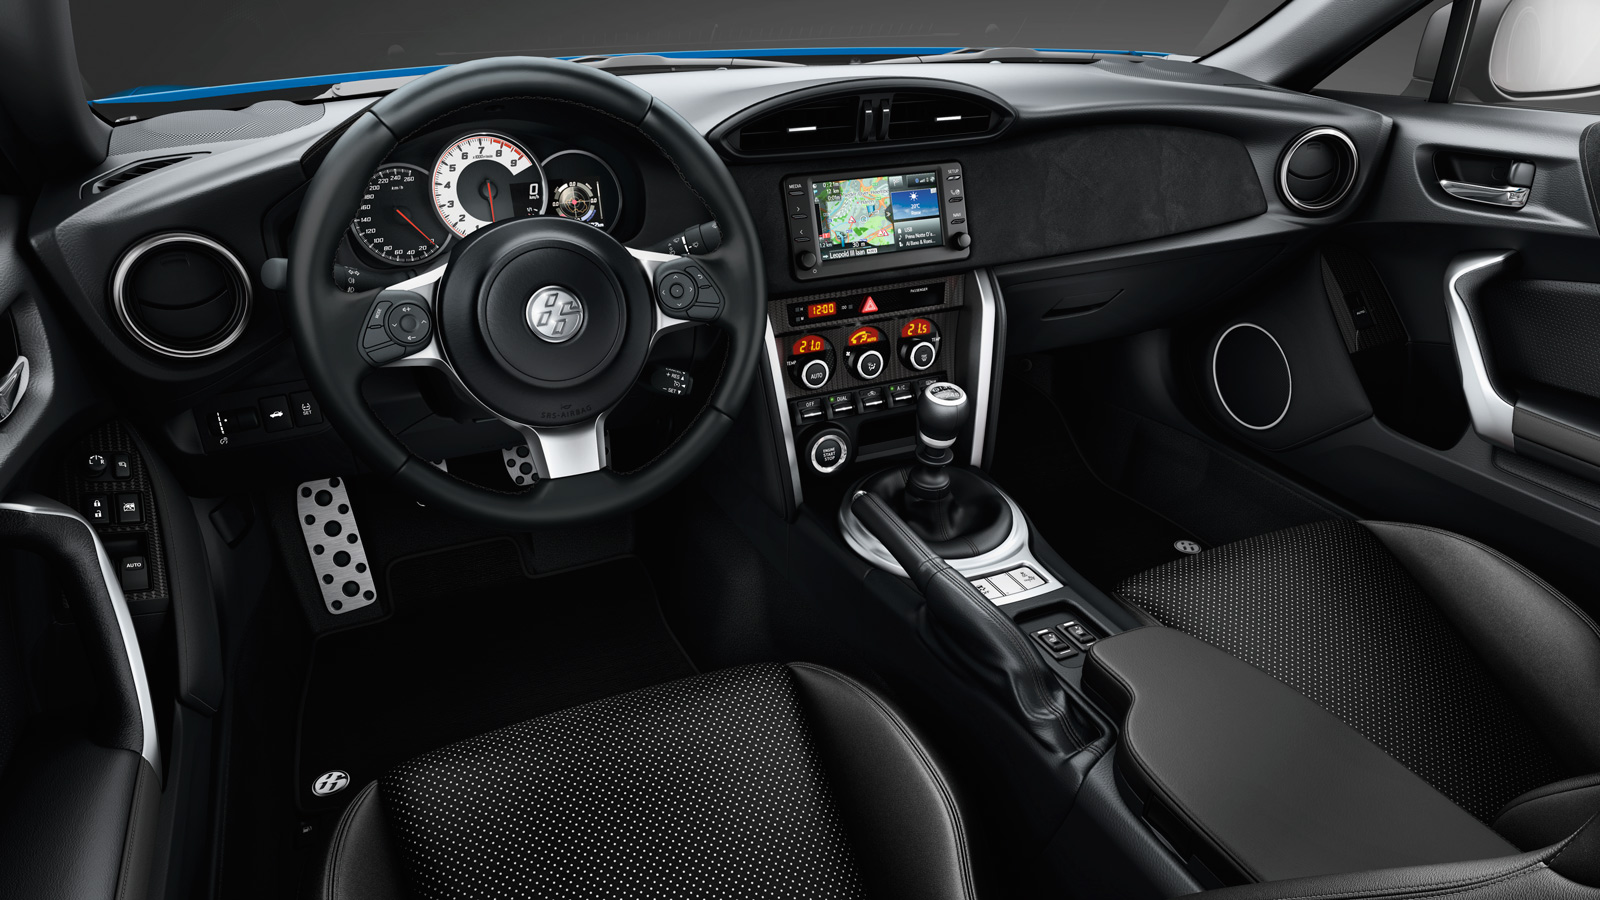 Toyota Gt86 Overview The Ultimate In Raw Unspoiled Driving